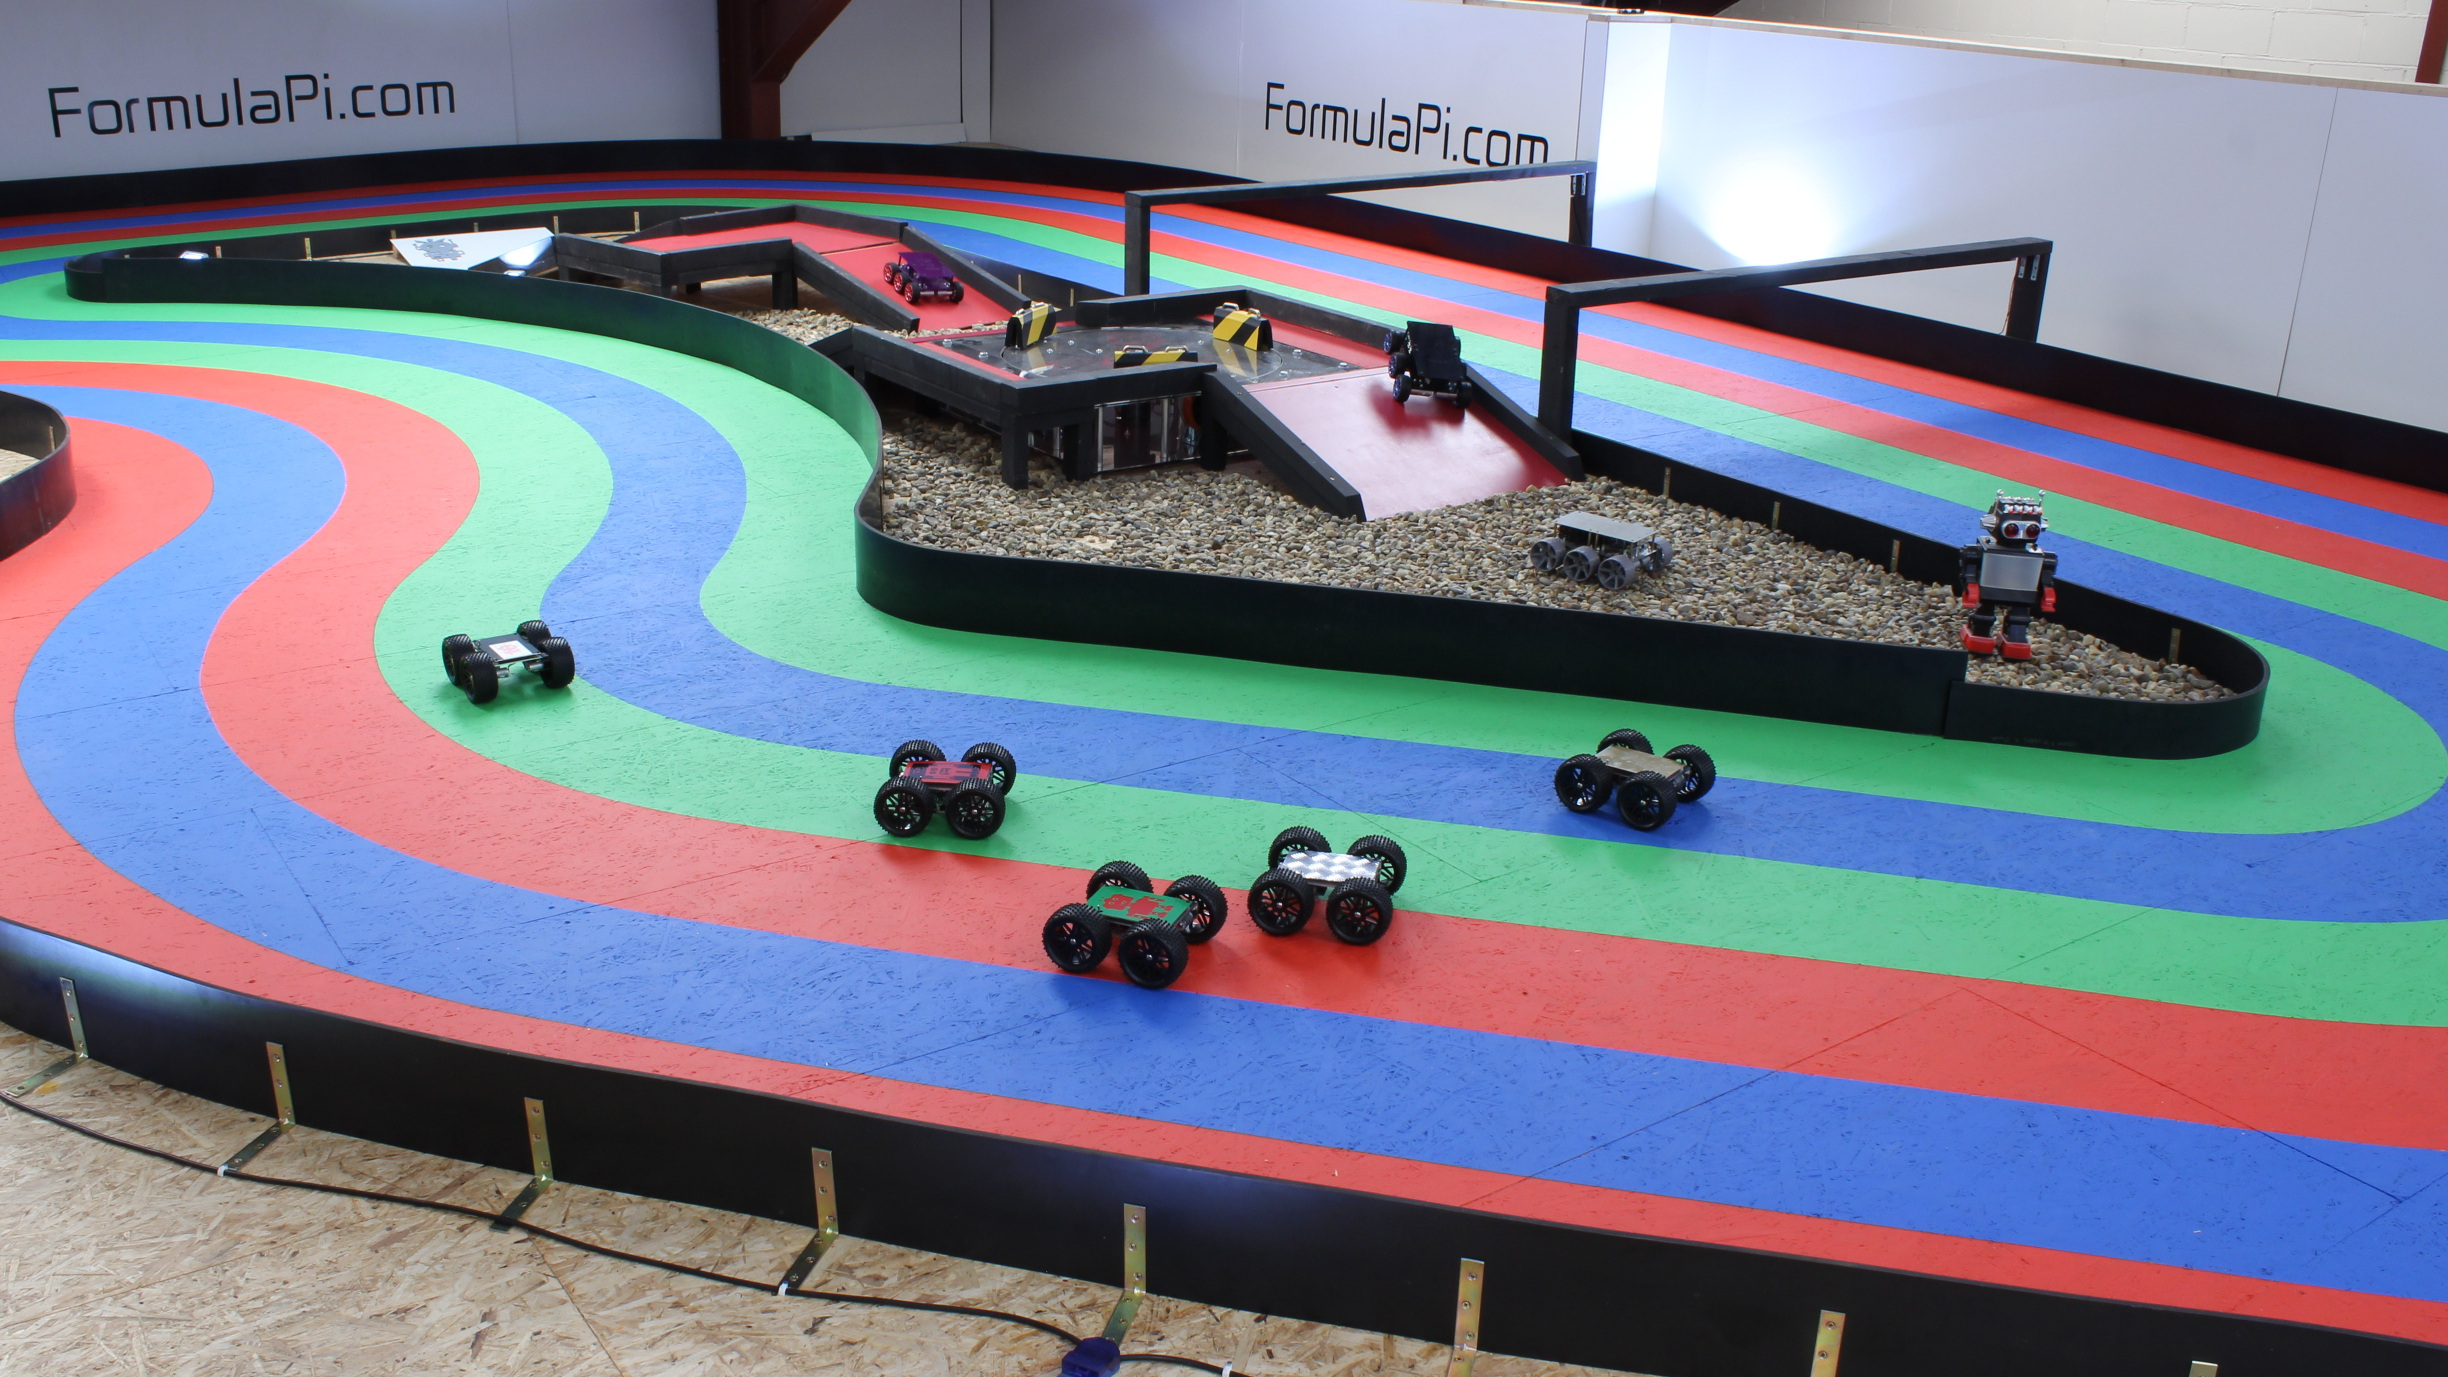 Race Track Lap Timer >> Formula Pi   Self-driving robot racing with the Raspberry Pi